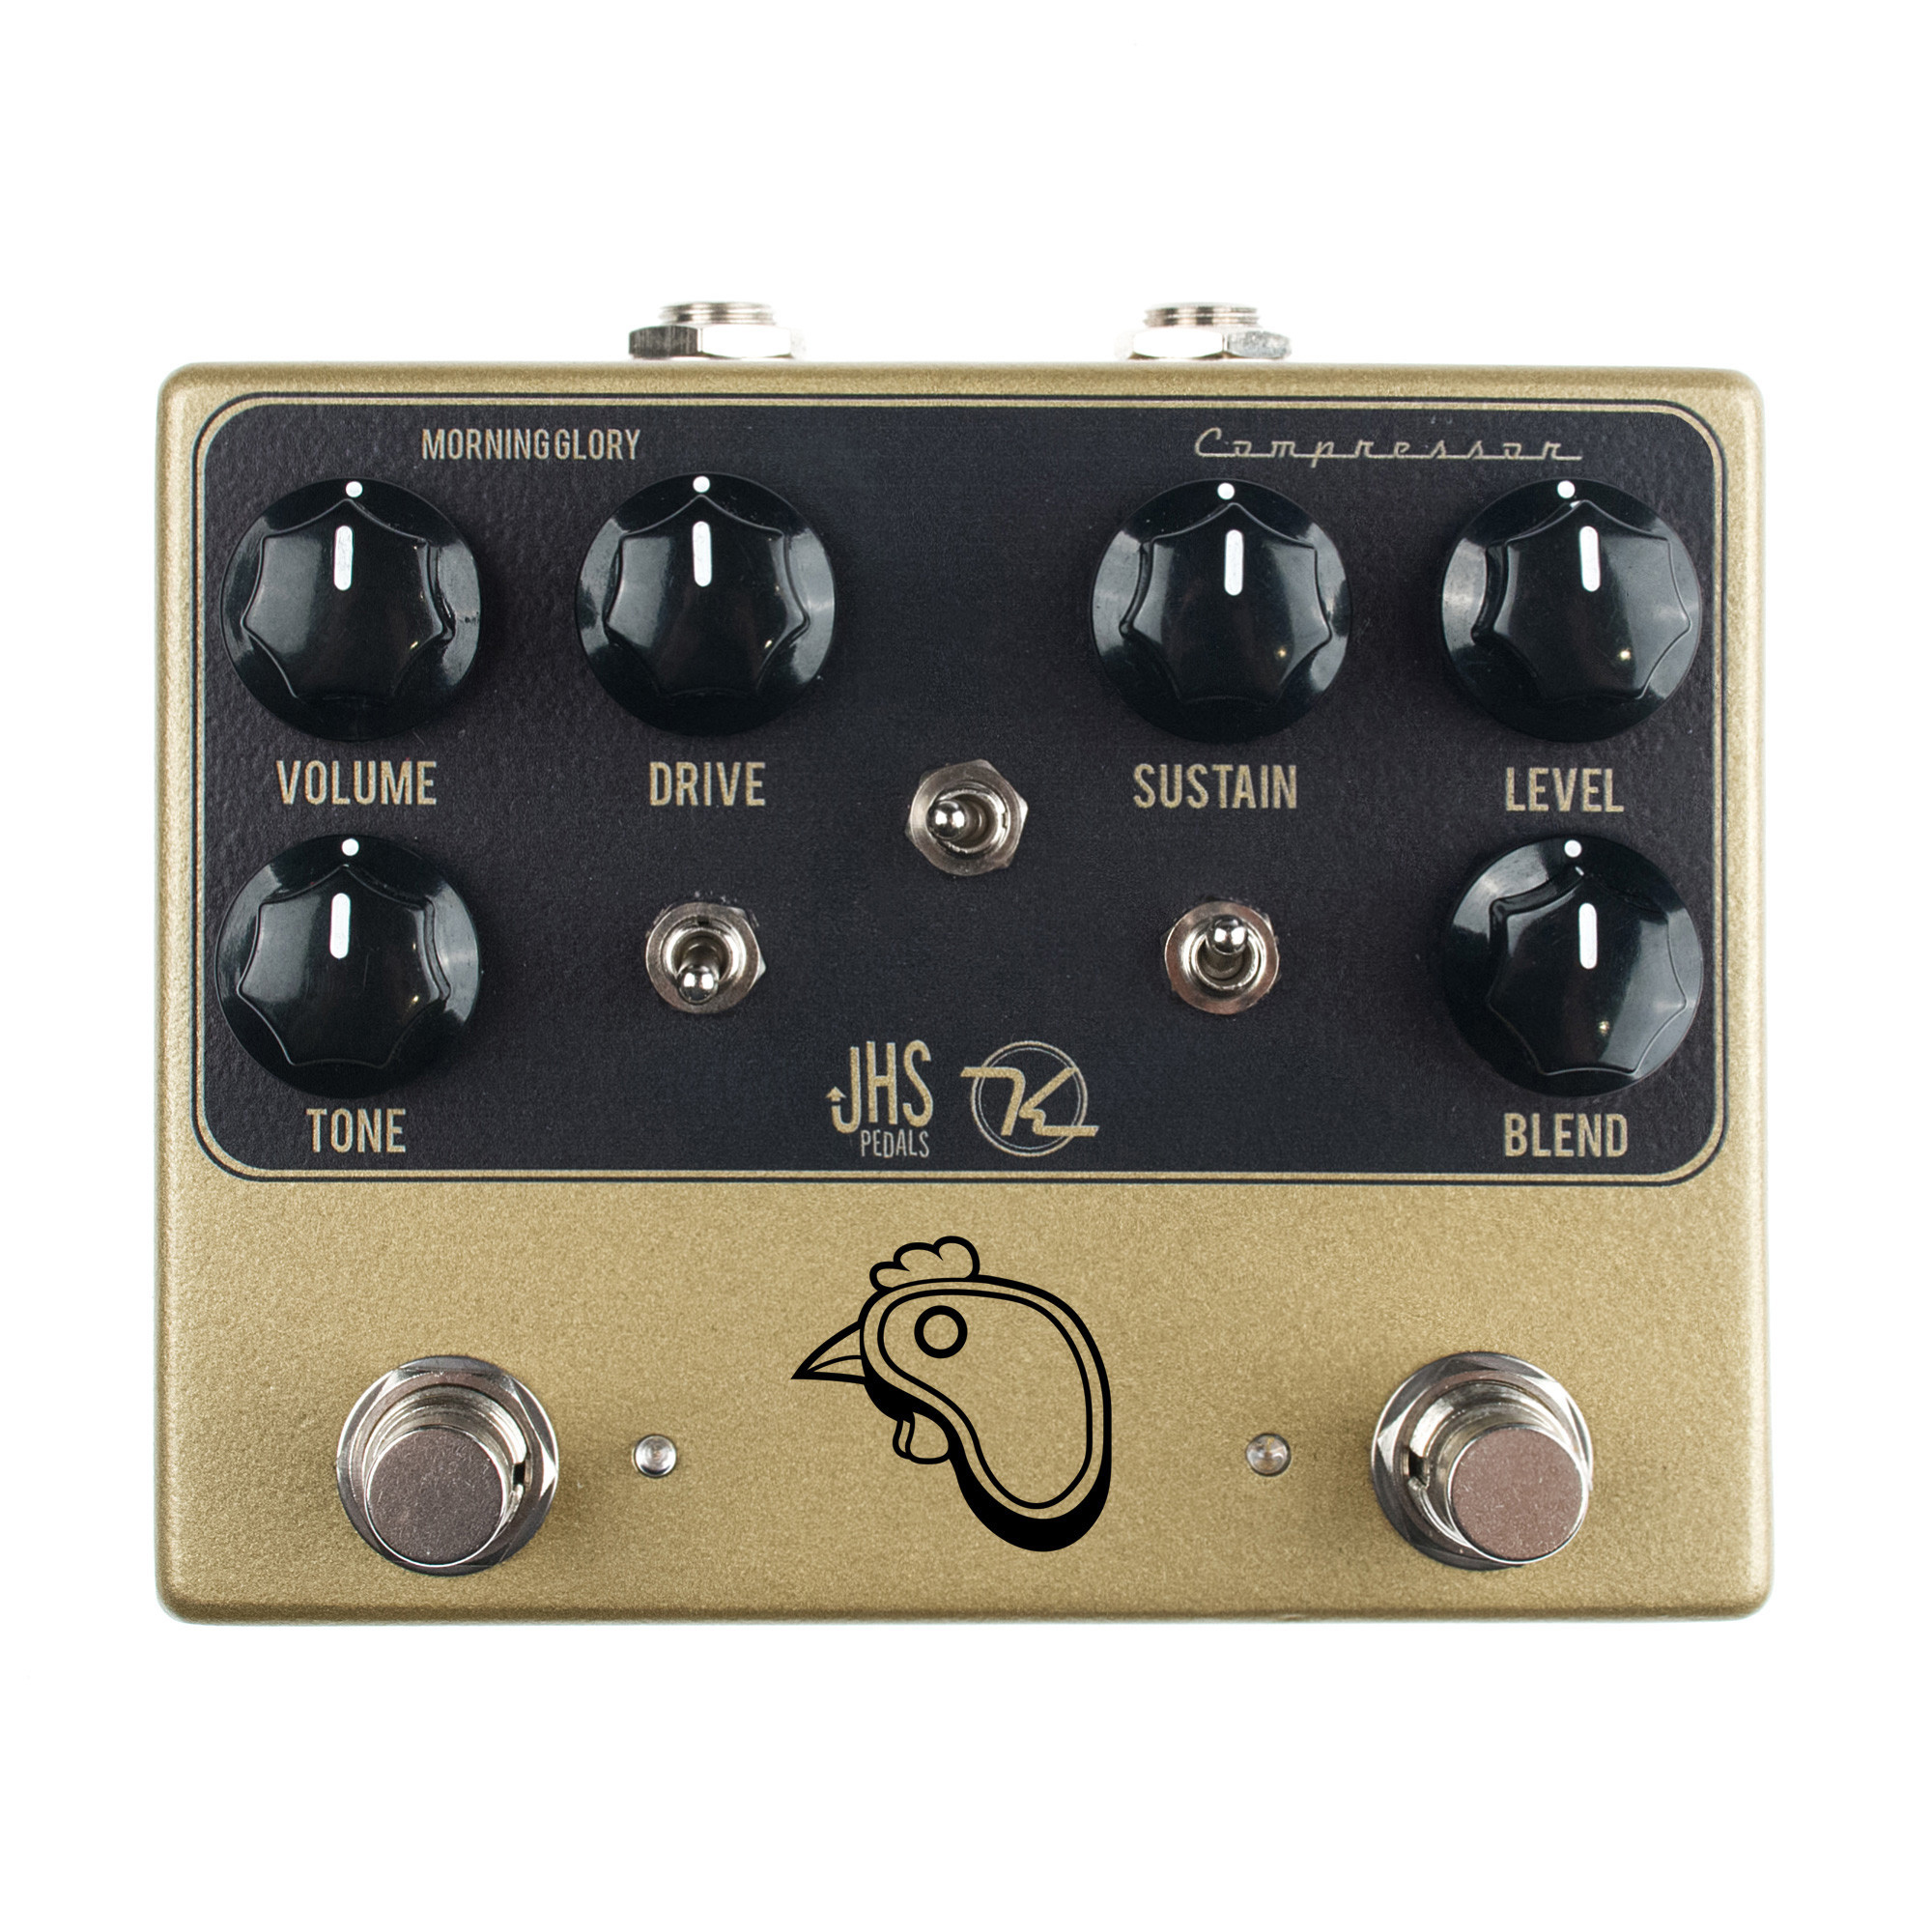 Jhs Pedals And Keeley Electronics Steak And Eggs Tone Report